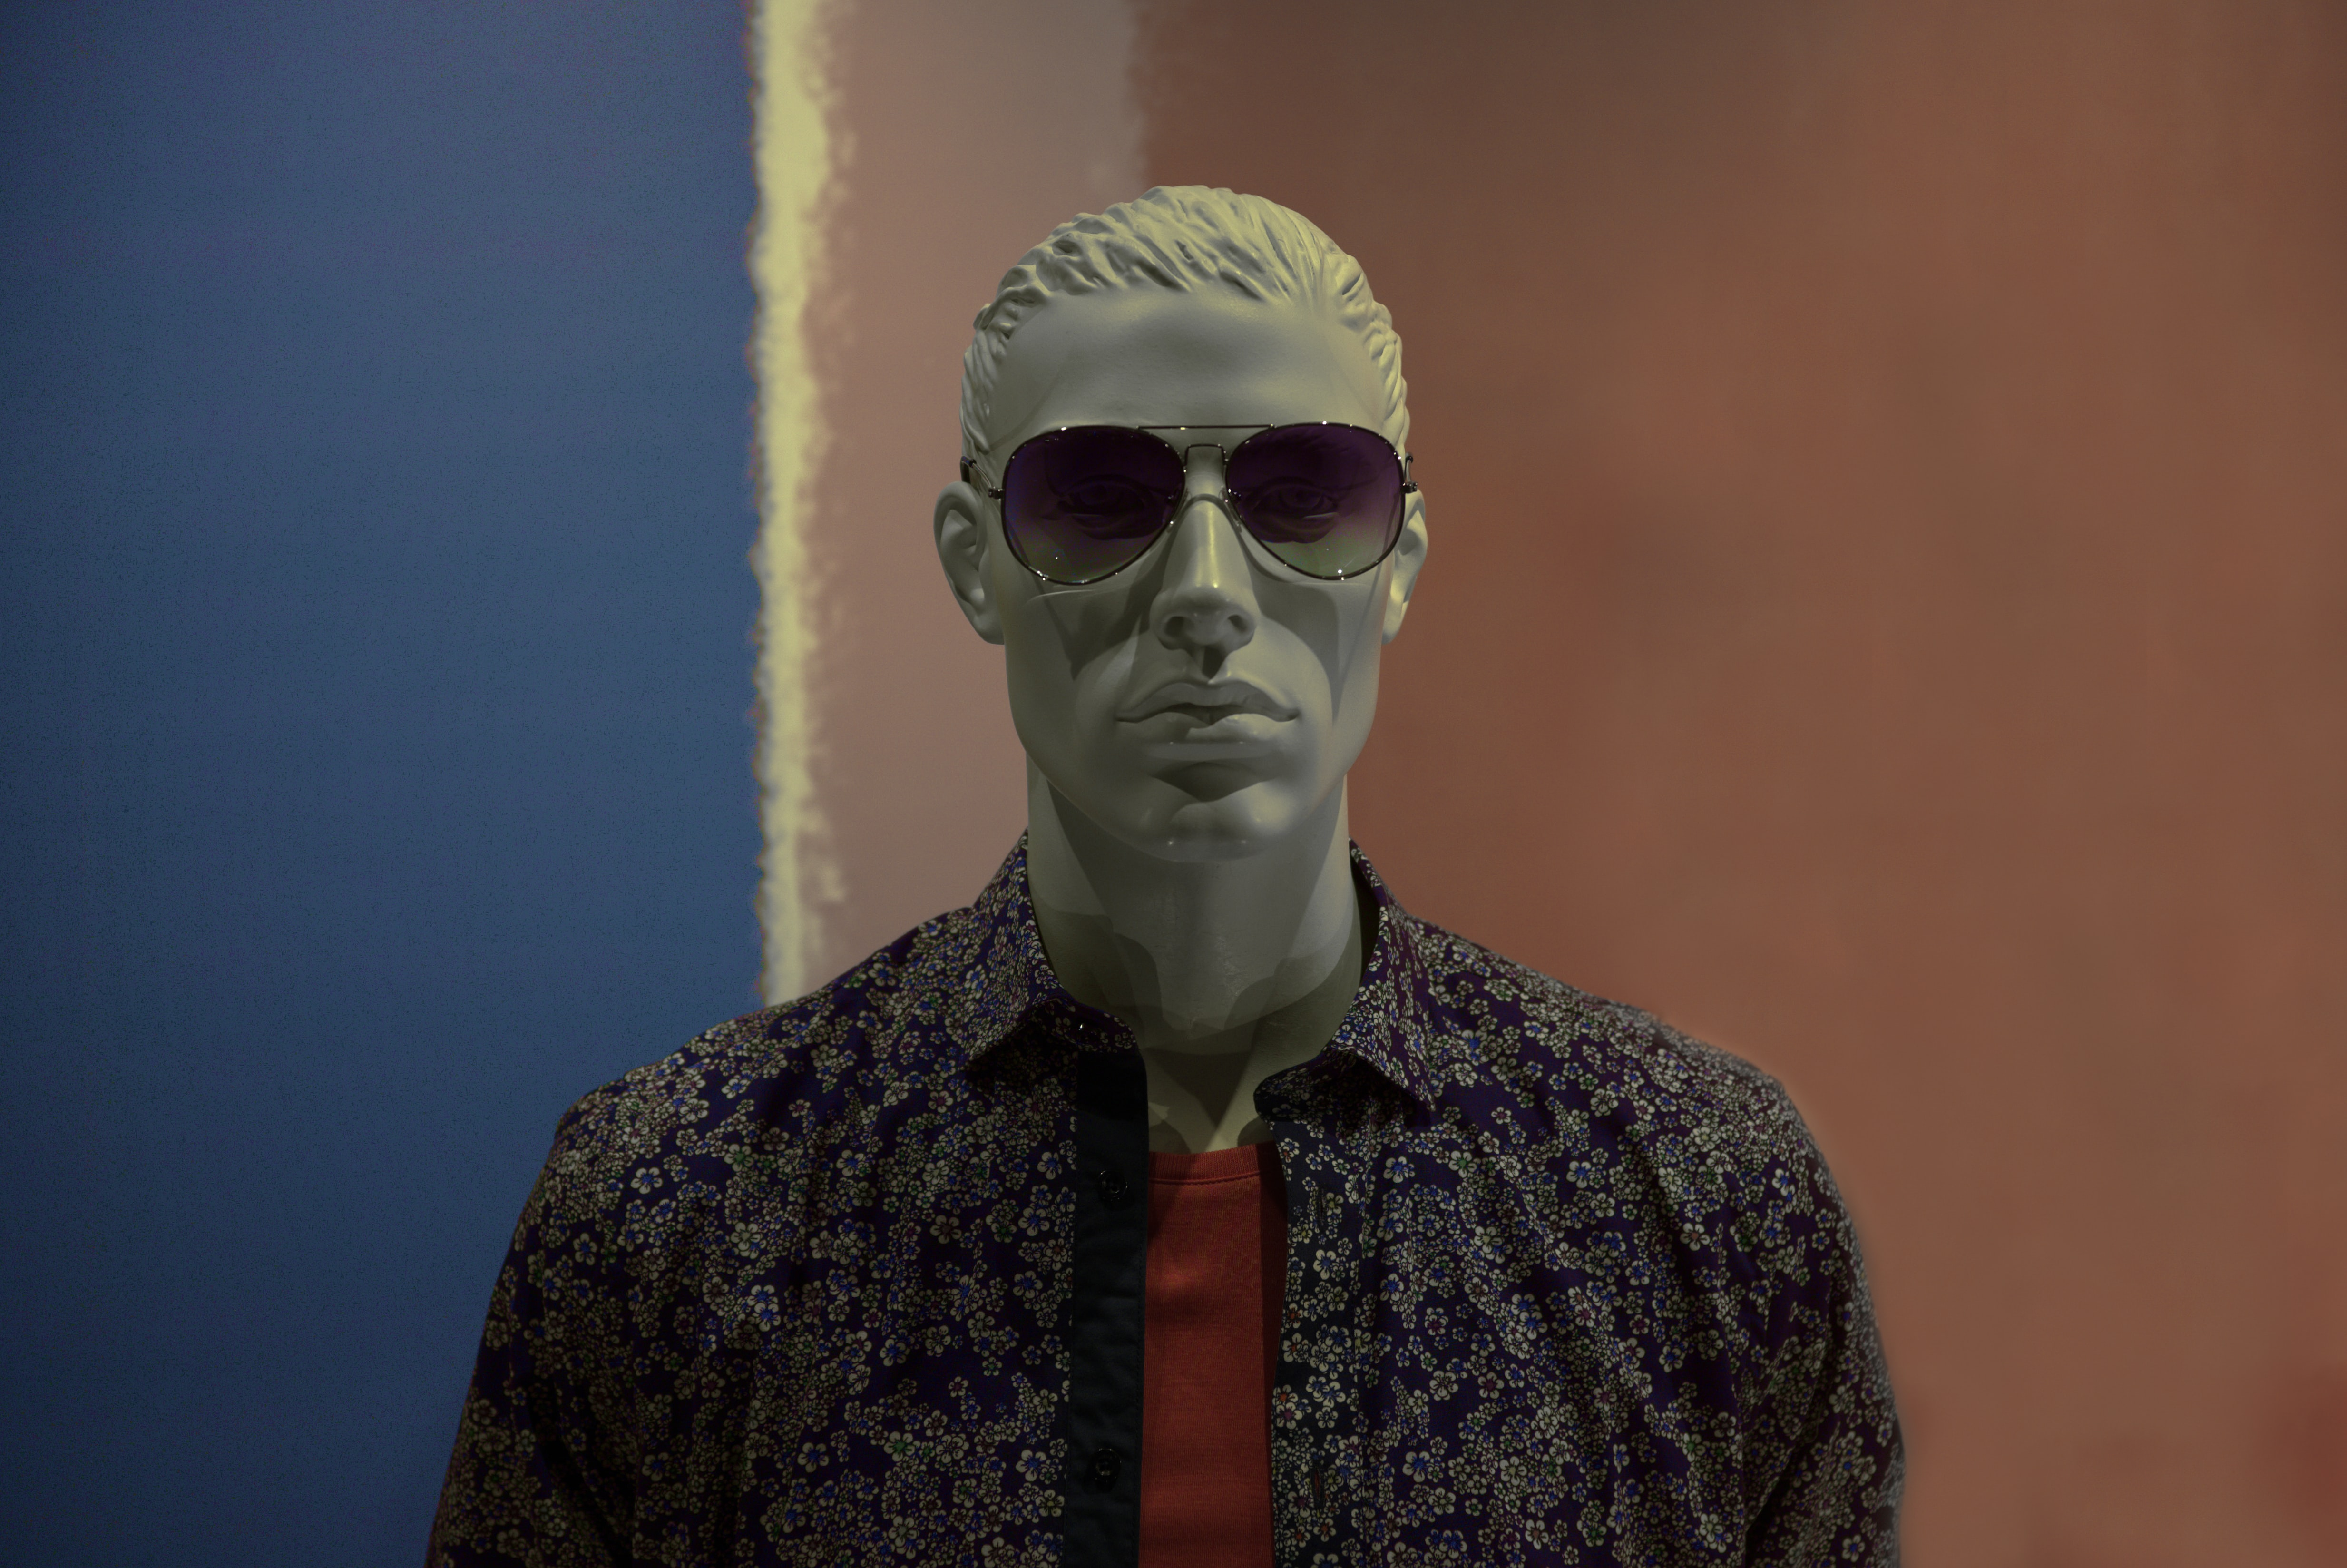 mannequin wearing purple sunglasses